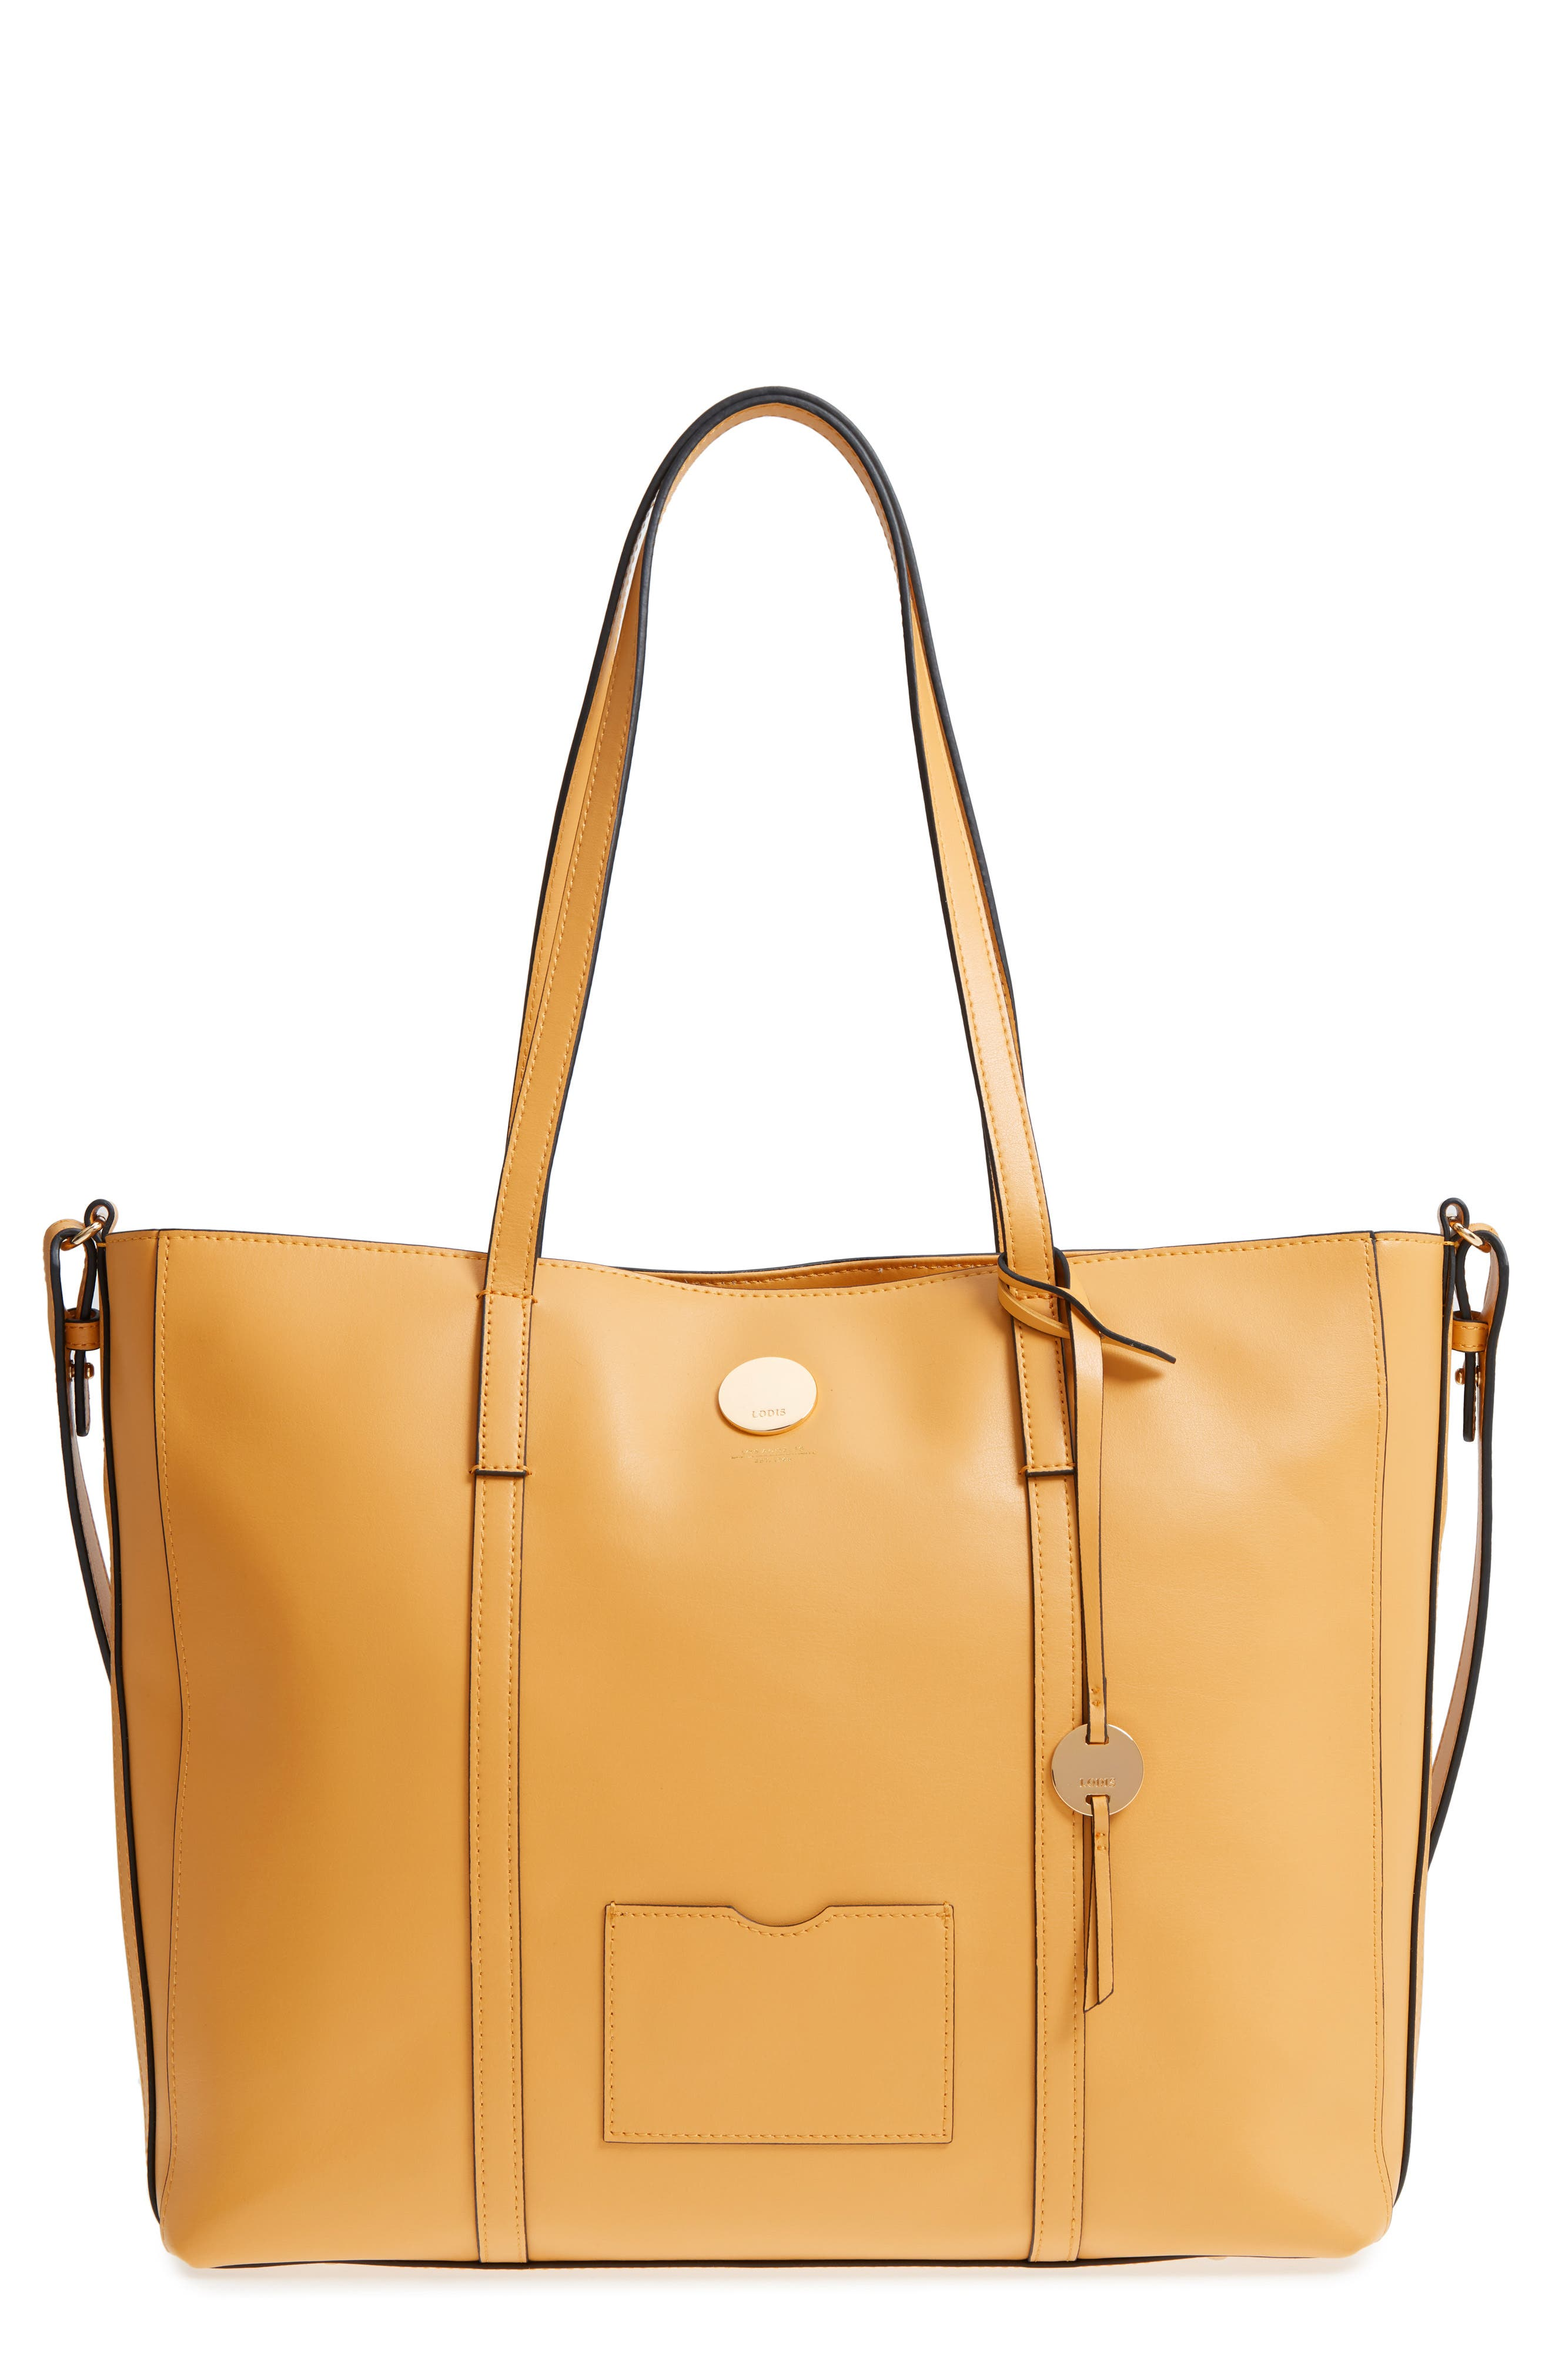 Nelly RFID Medium Leather Tote,                             Main thumbnail 1, color,                             Yellow